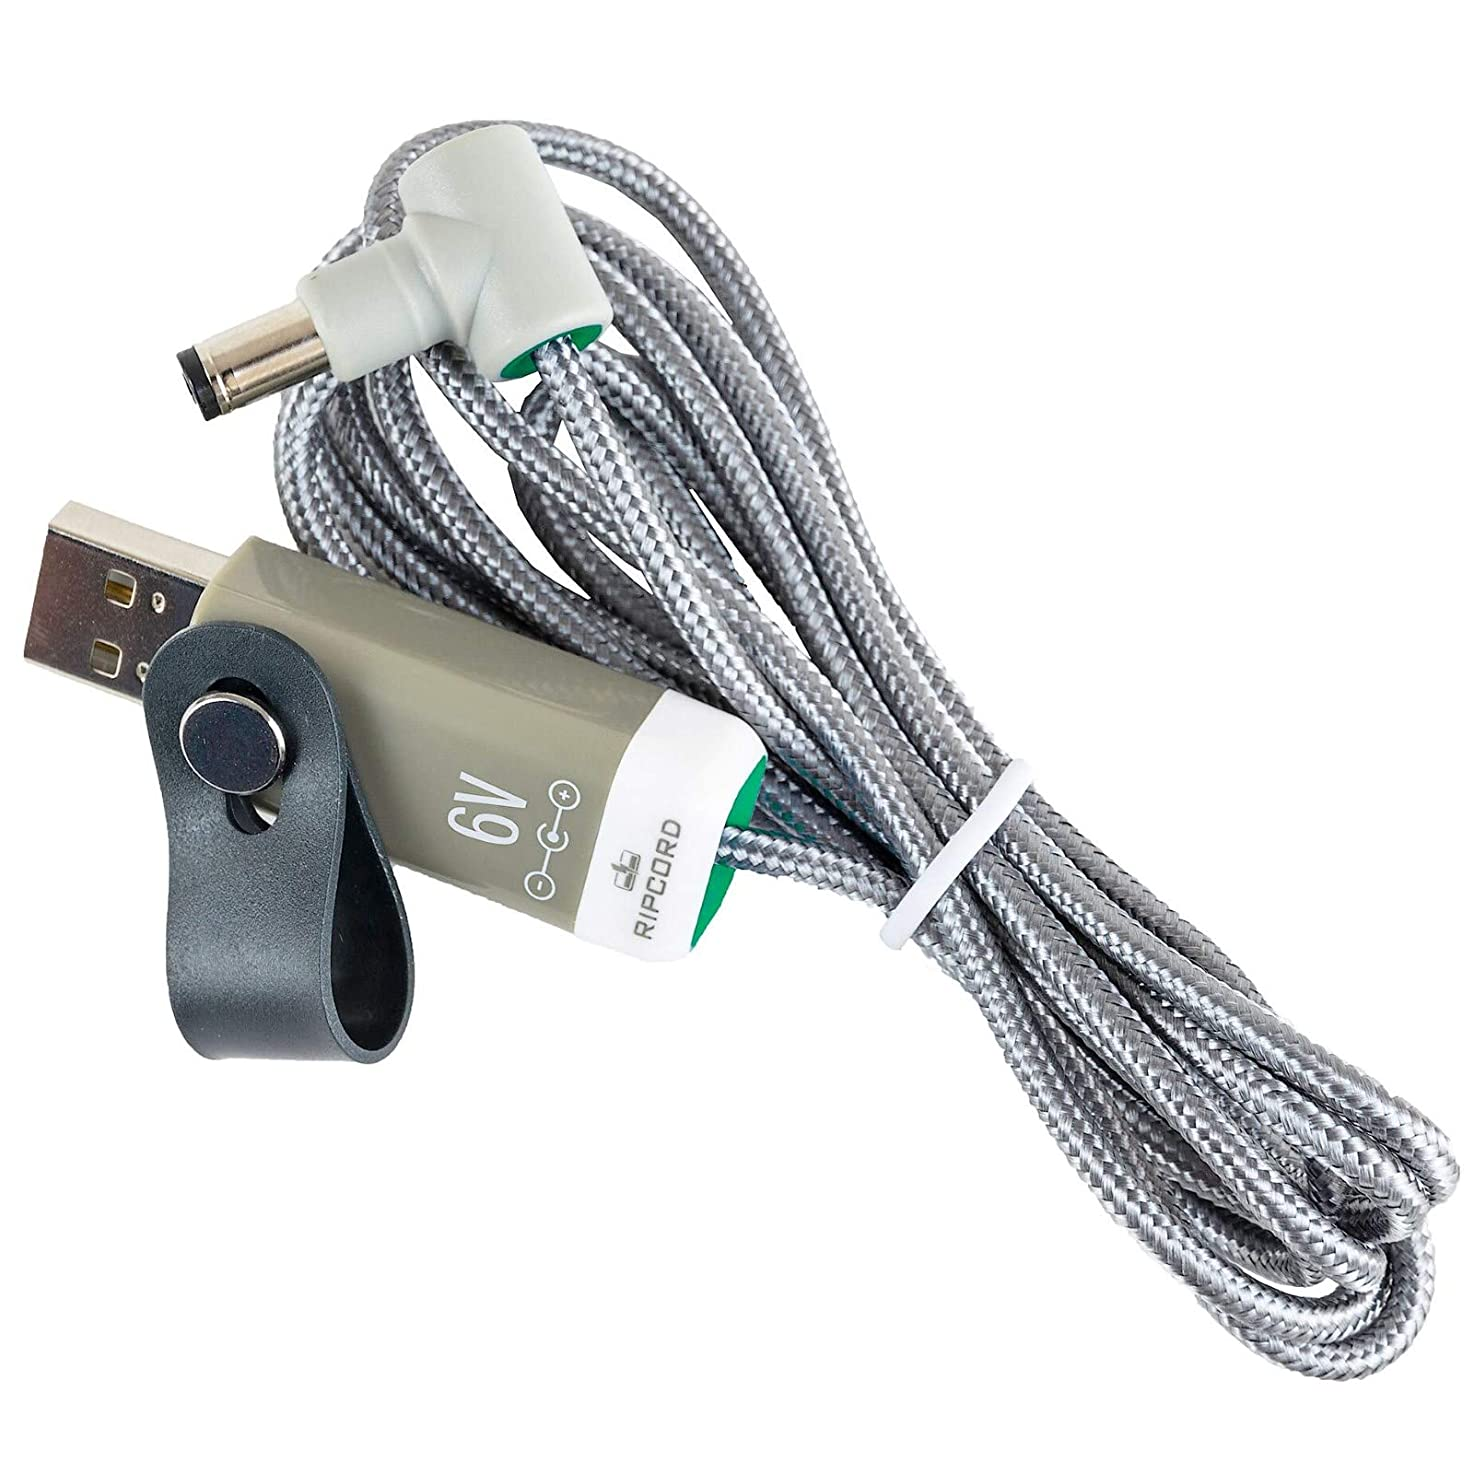 myVolts Ripcord - USB to 6V DC Power Cable Compatible with The VTech VM312 Baby Monitor